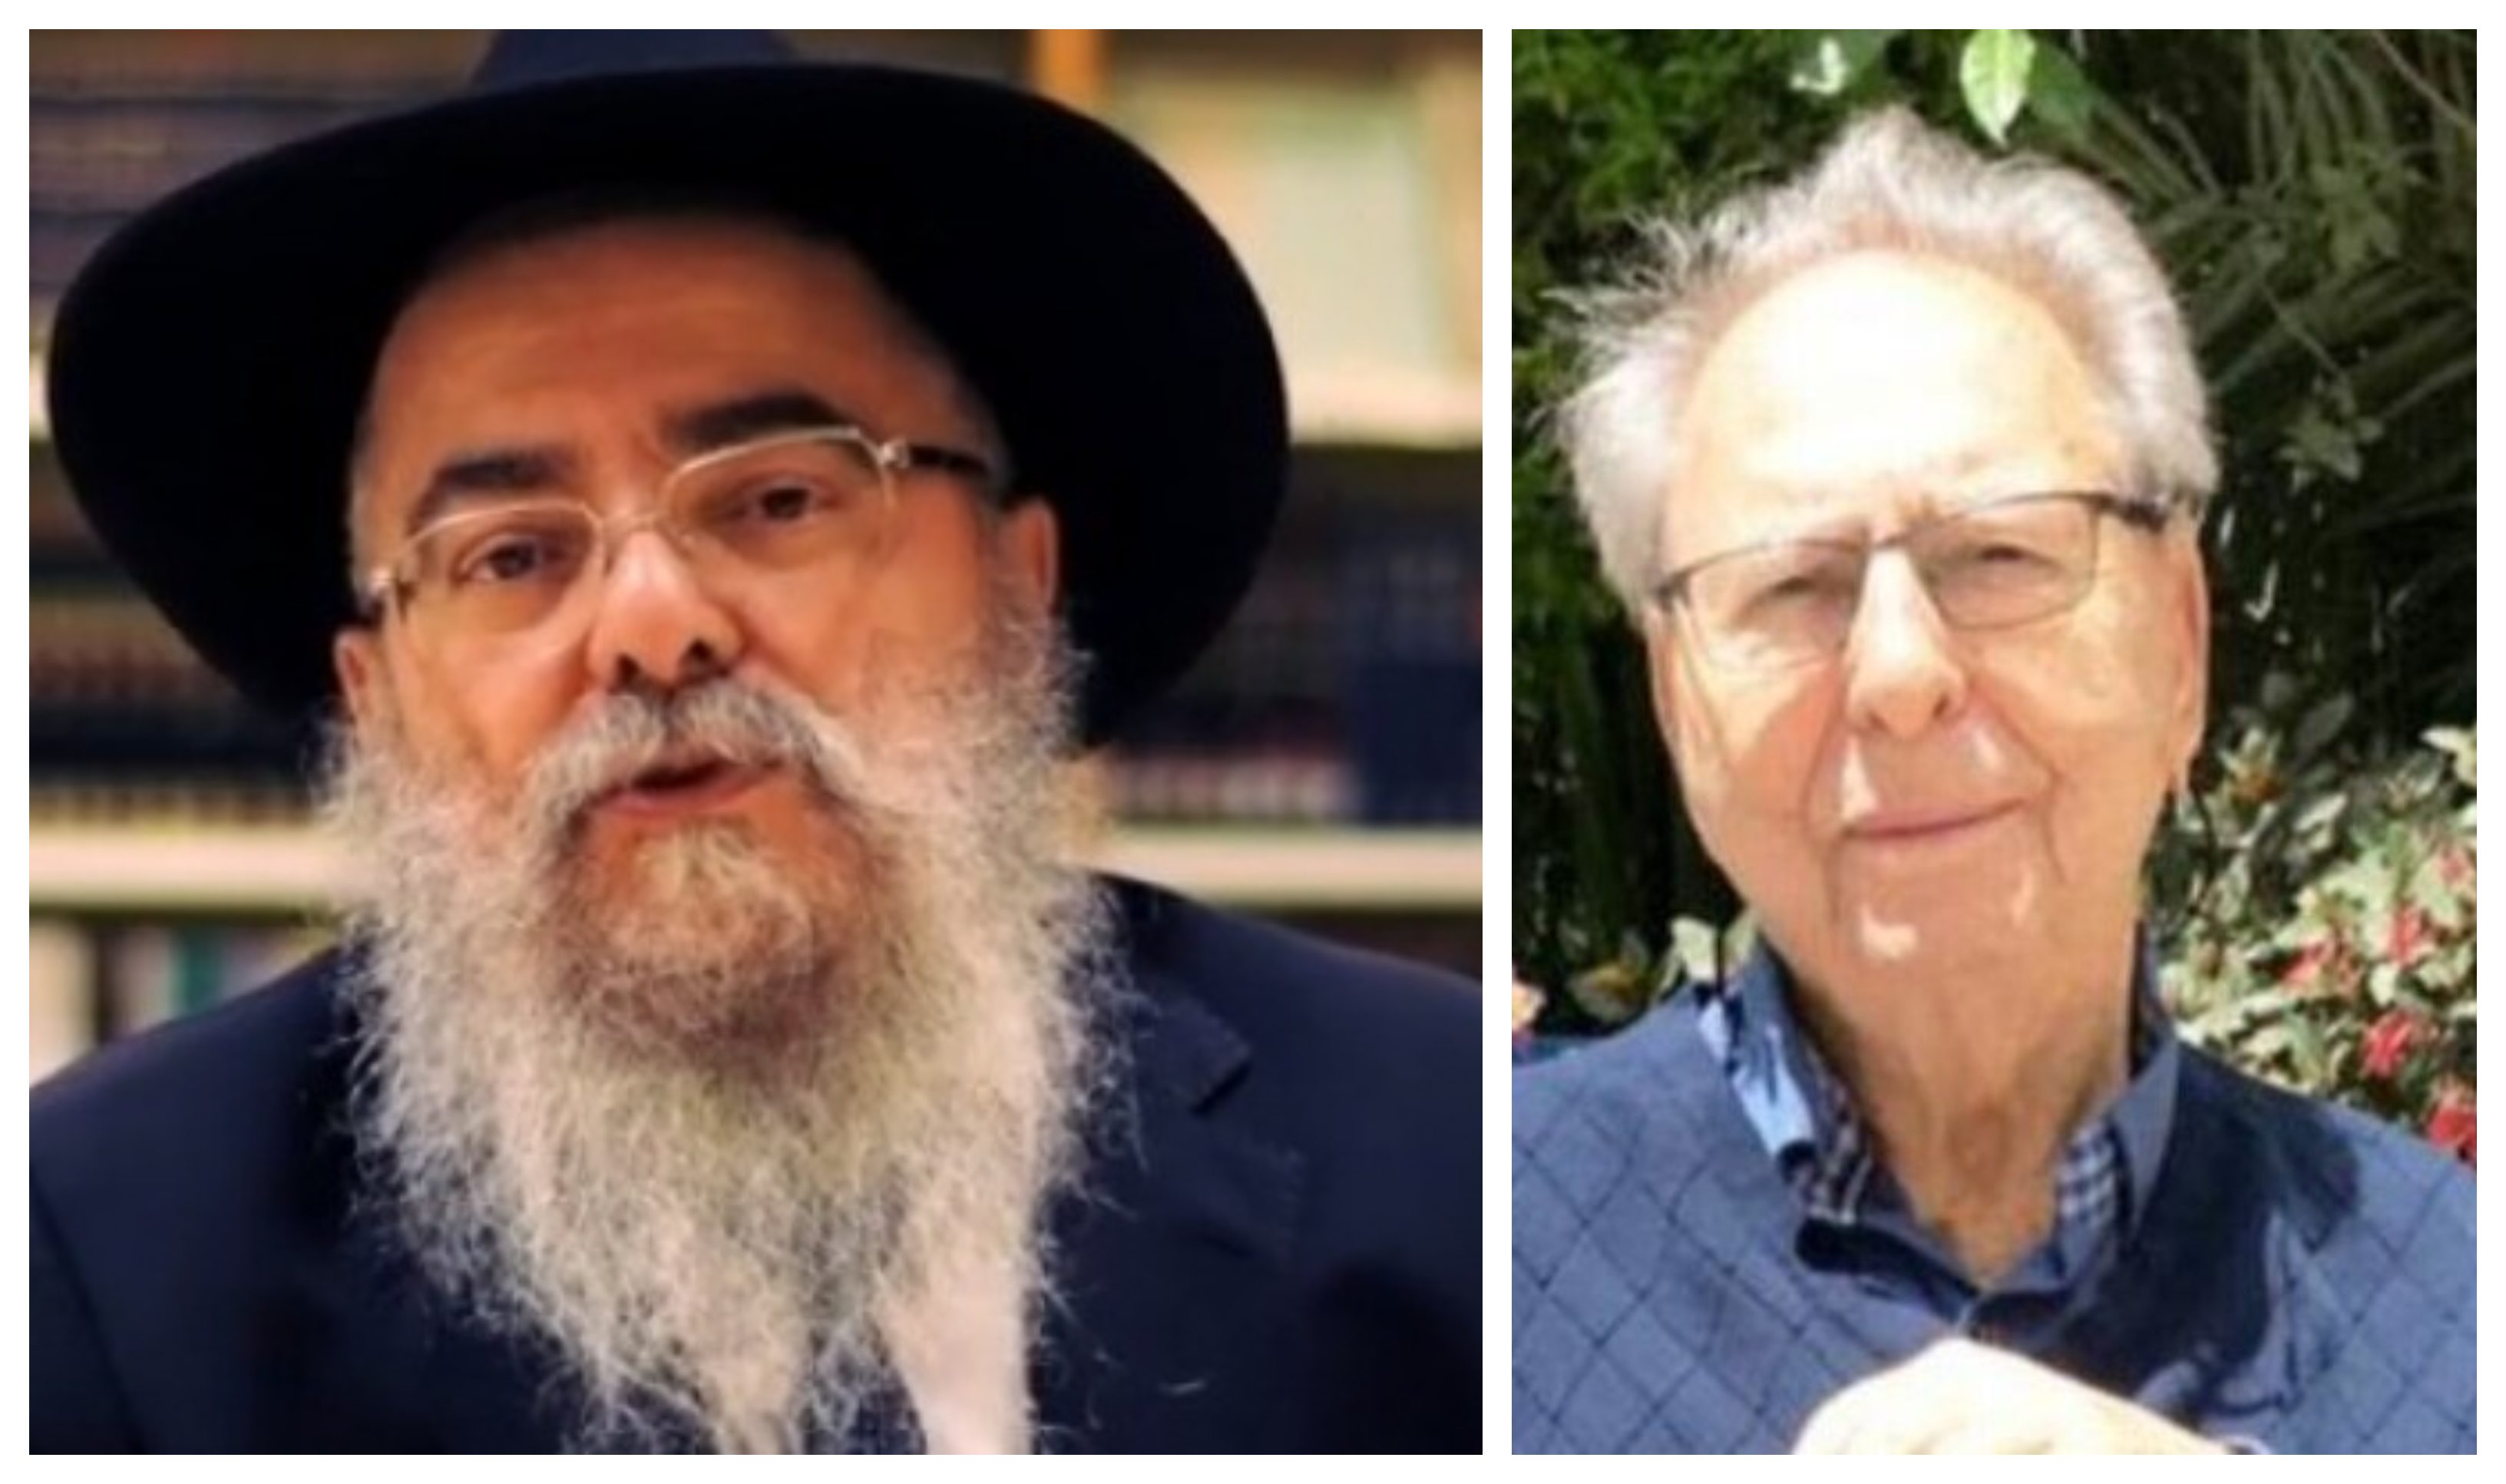 Rabbi Masud Tubul and Aryeh Even, early Jewish victims of the novel coronavirus